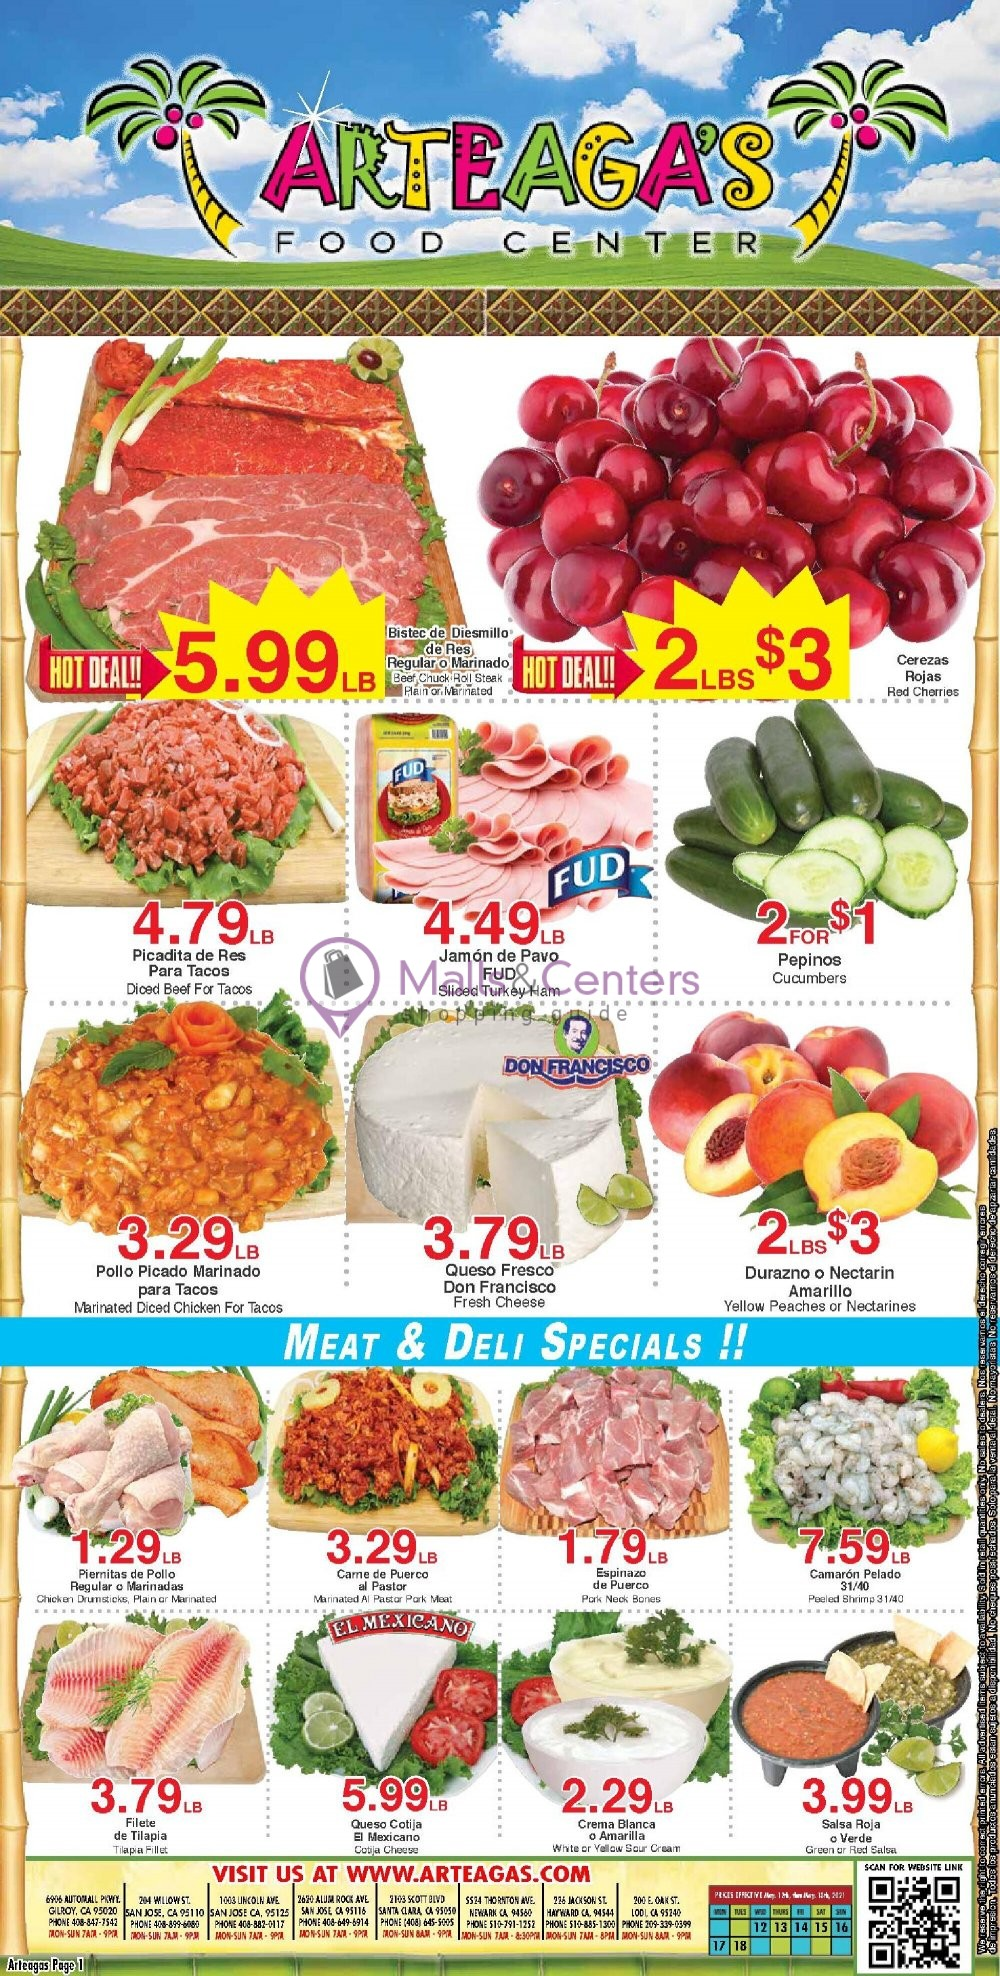 weekly ads Arteagas Food Center - page 1 - mallscenters.com